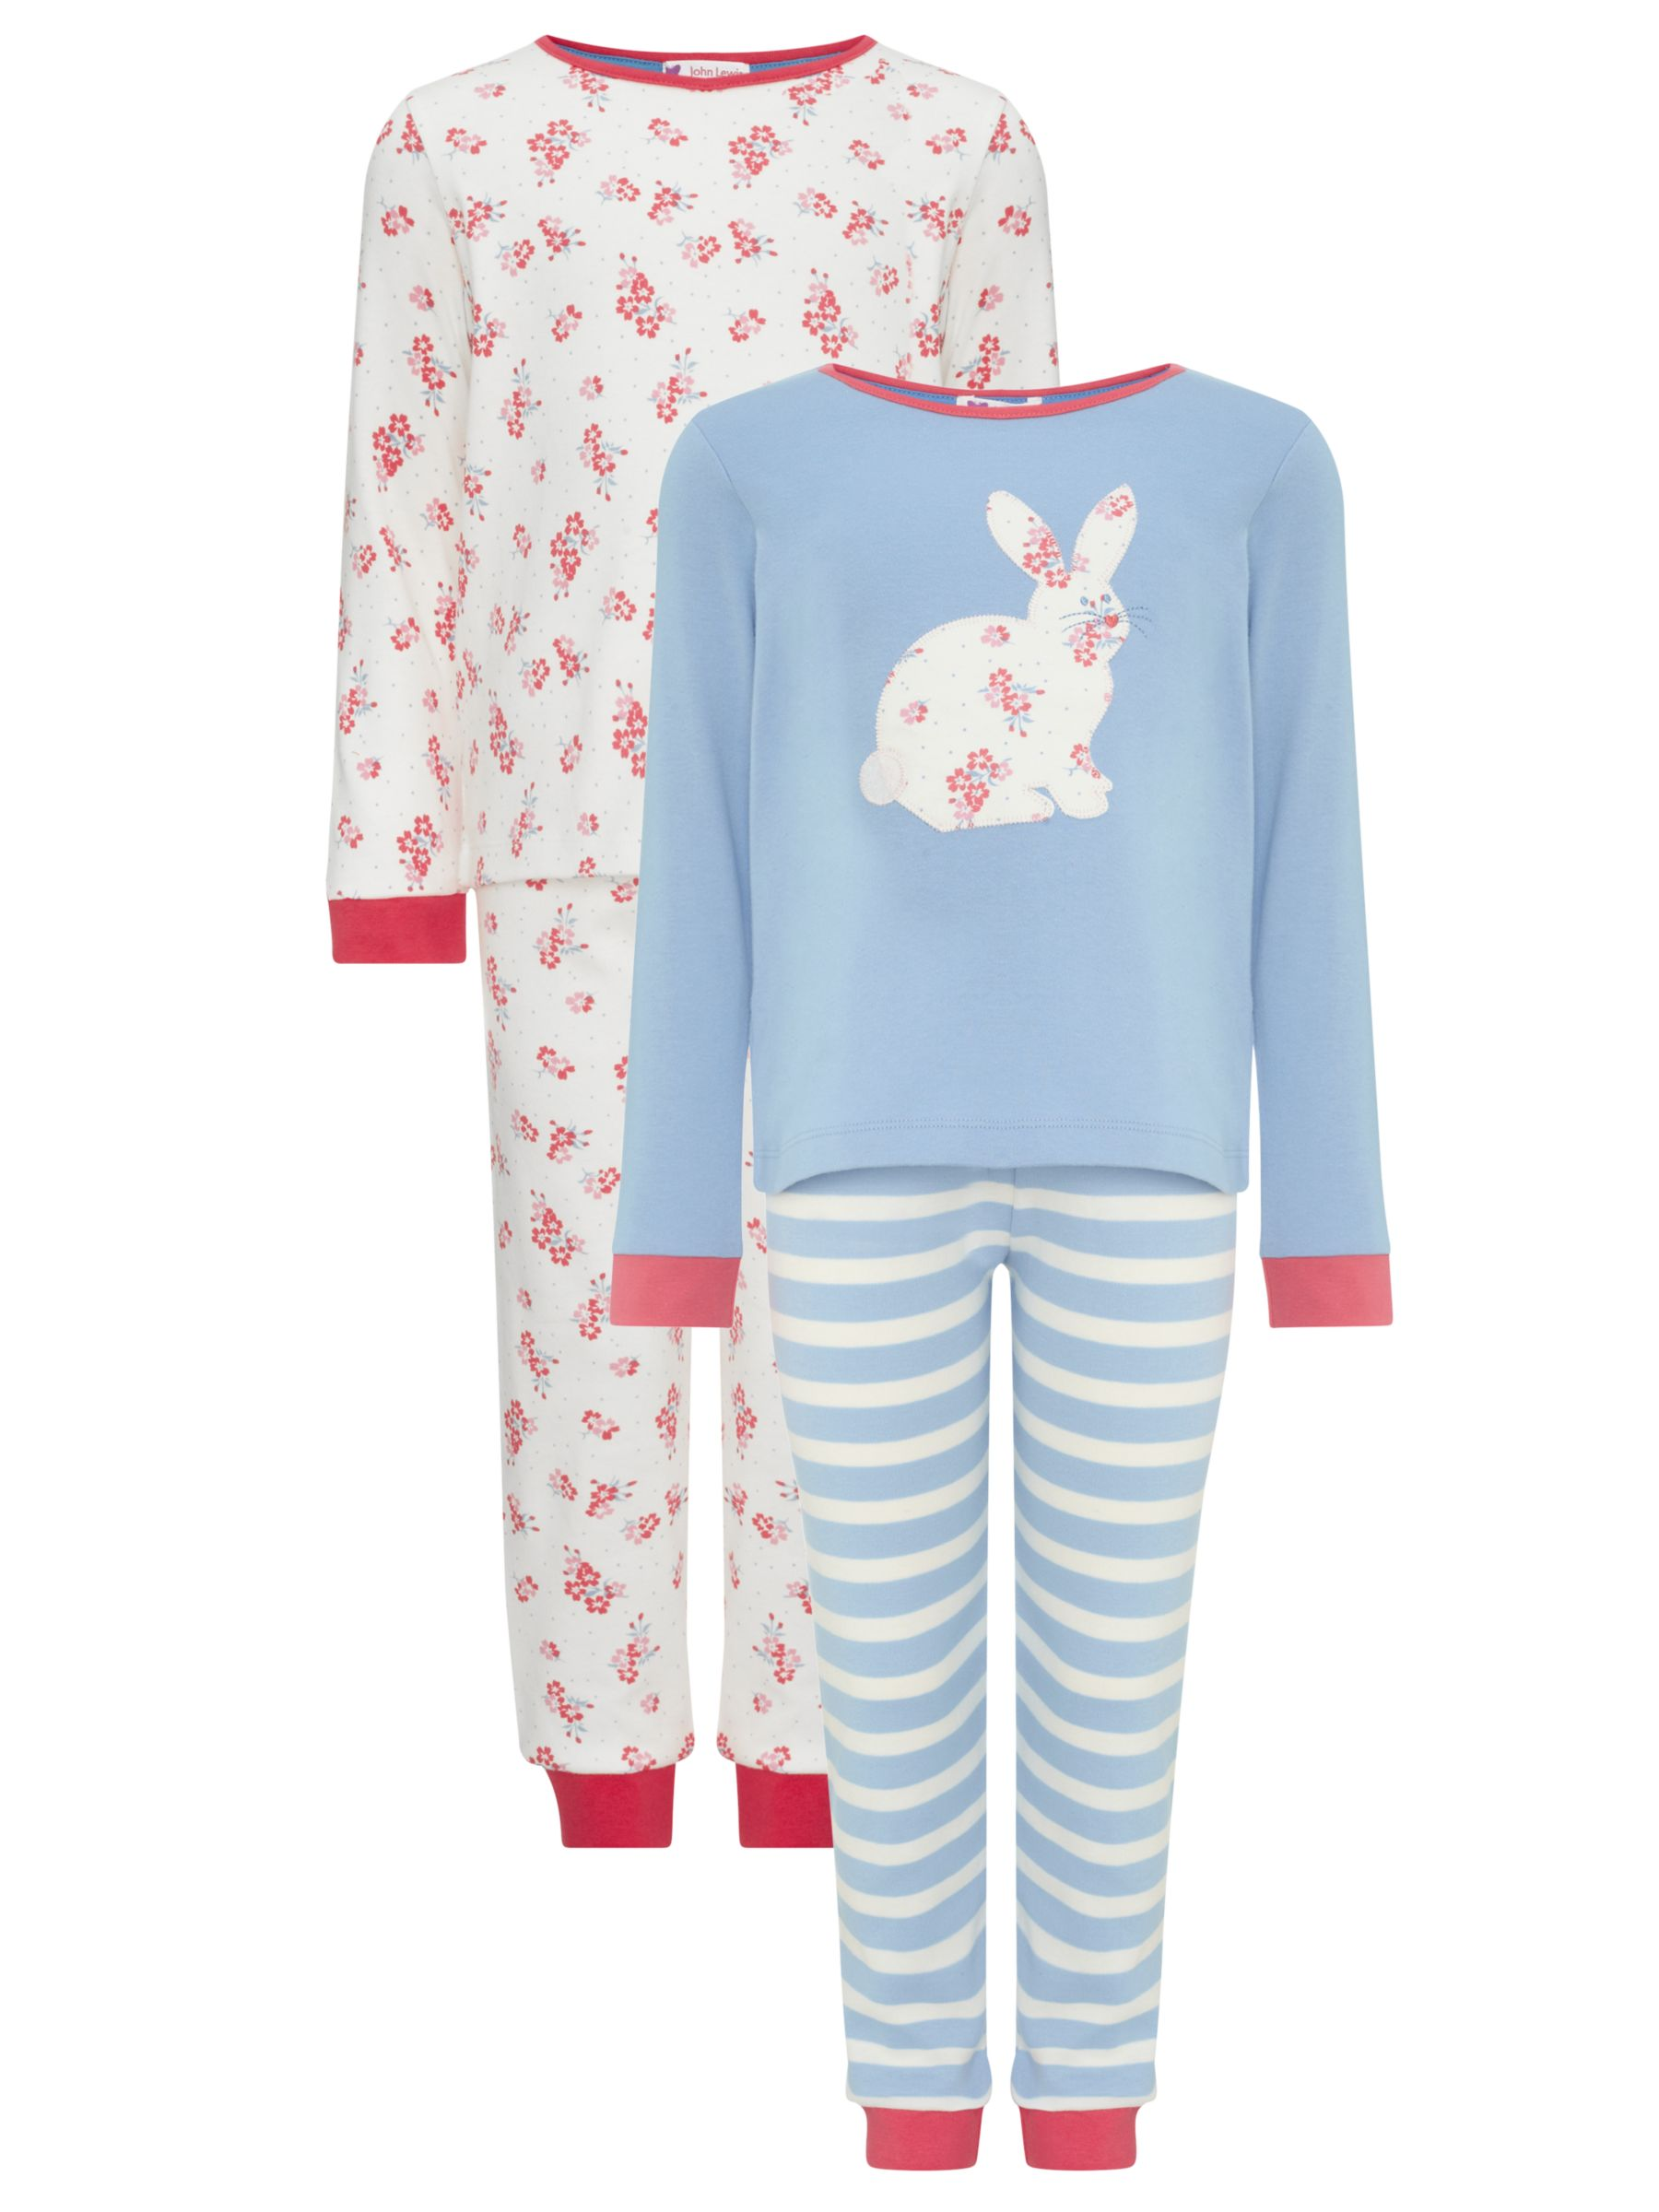 John Lewis Girl Bunny and Floral Print Pyjamas, Pack of 2, Multi